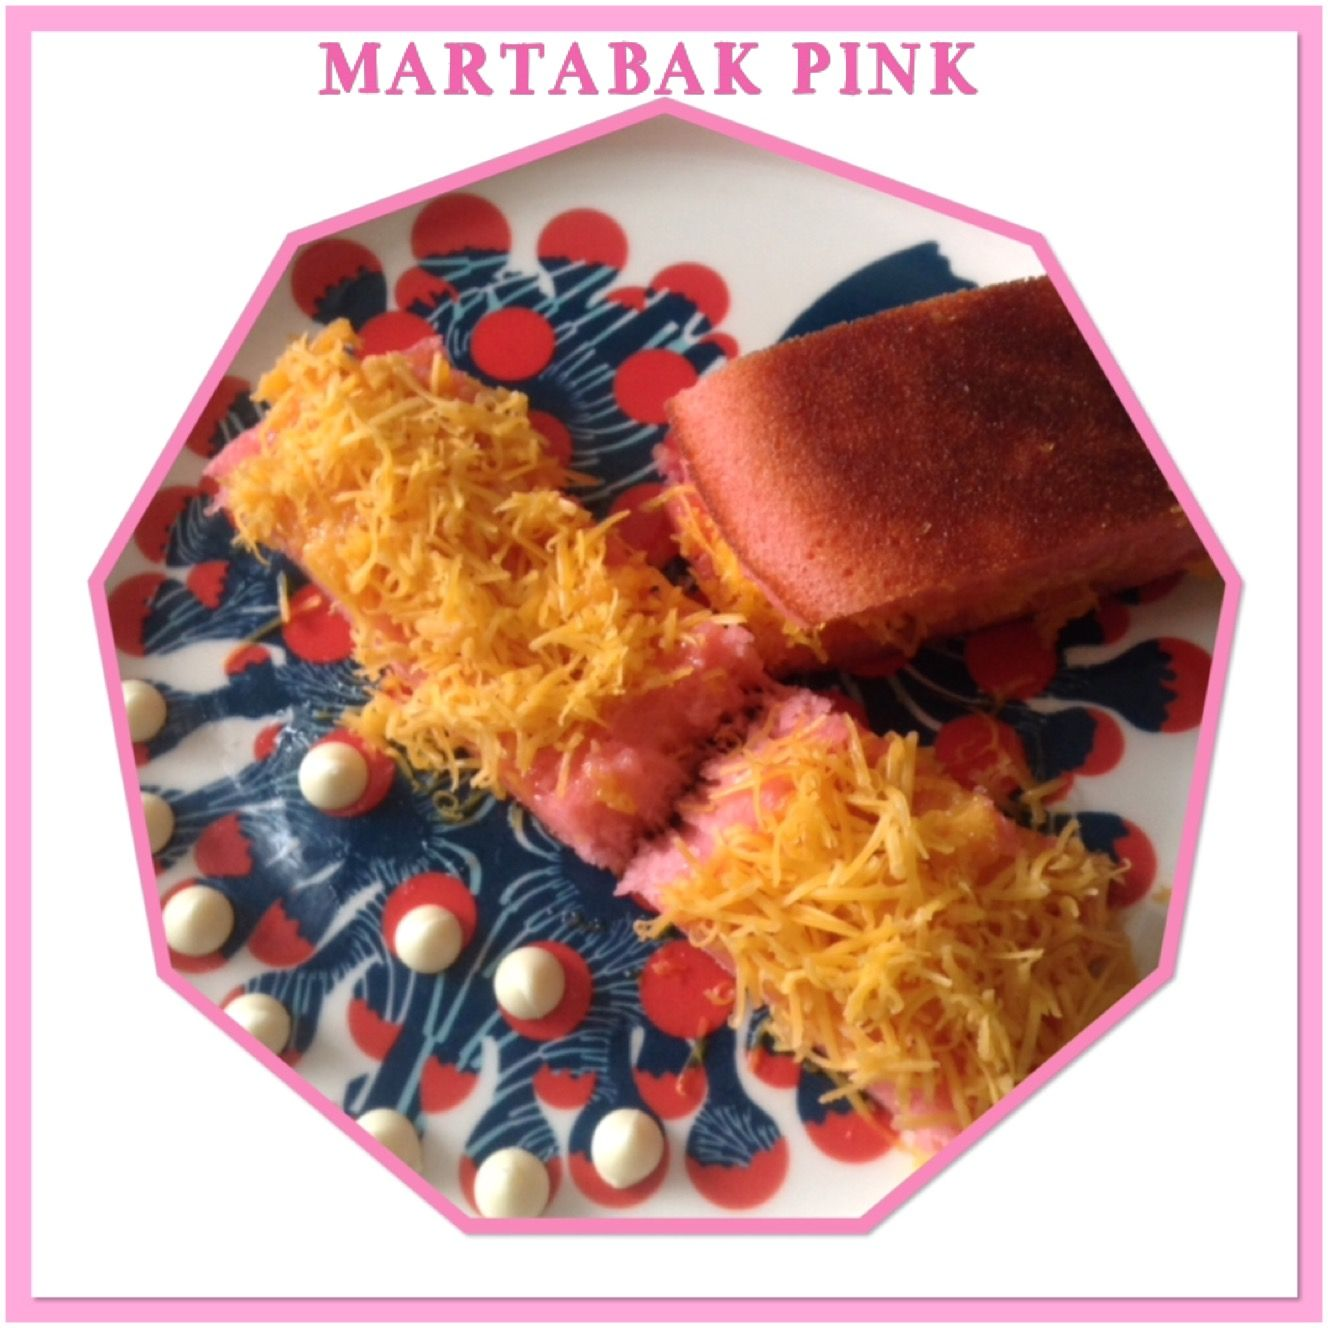 Martabak Pink Pink Takeout Container Food